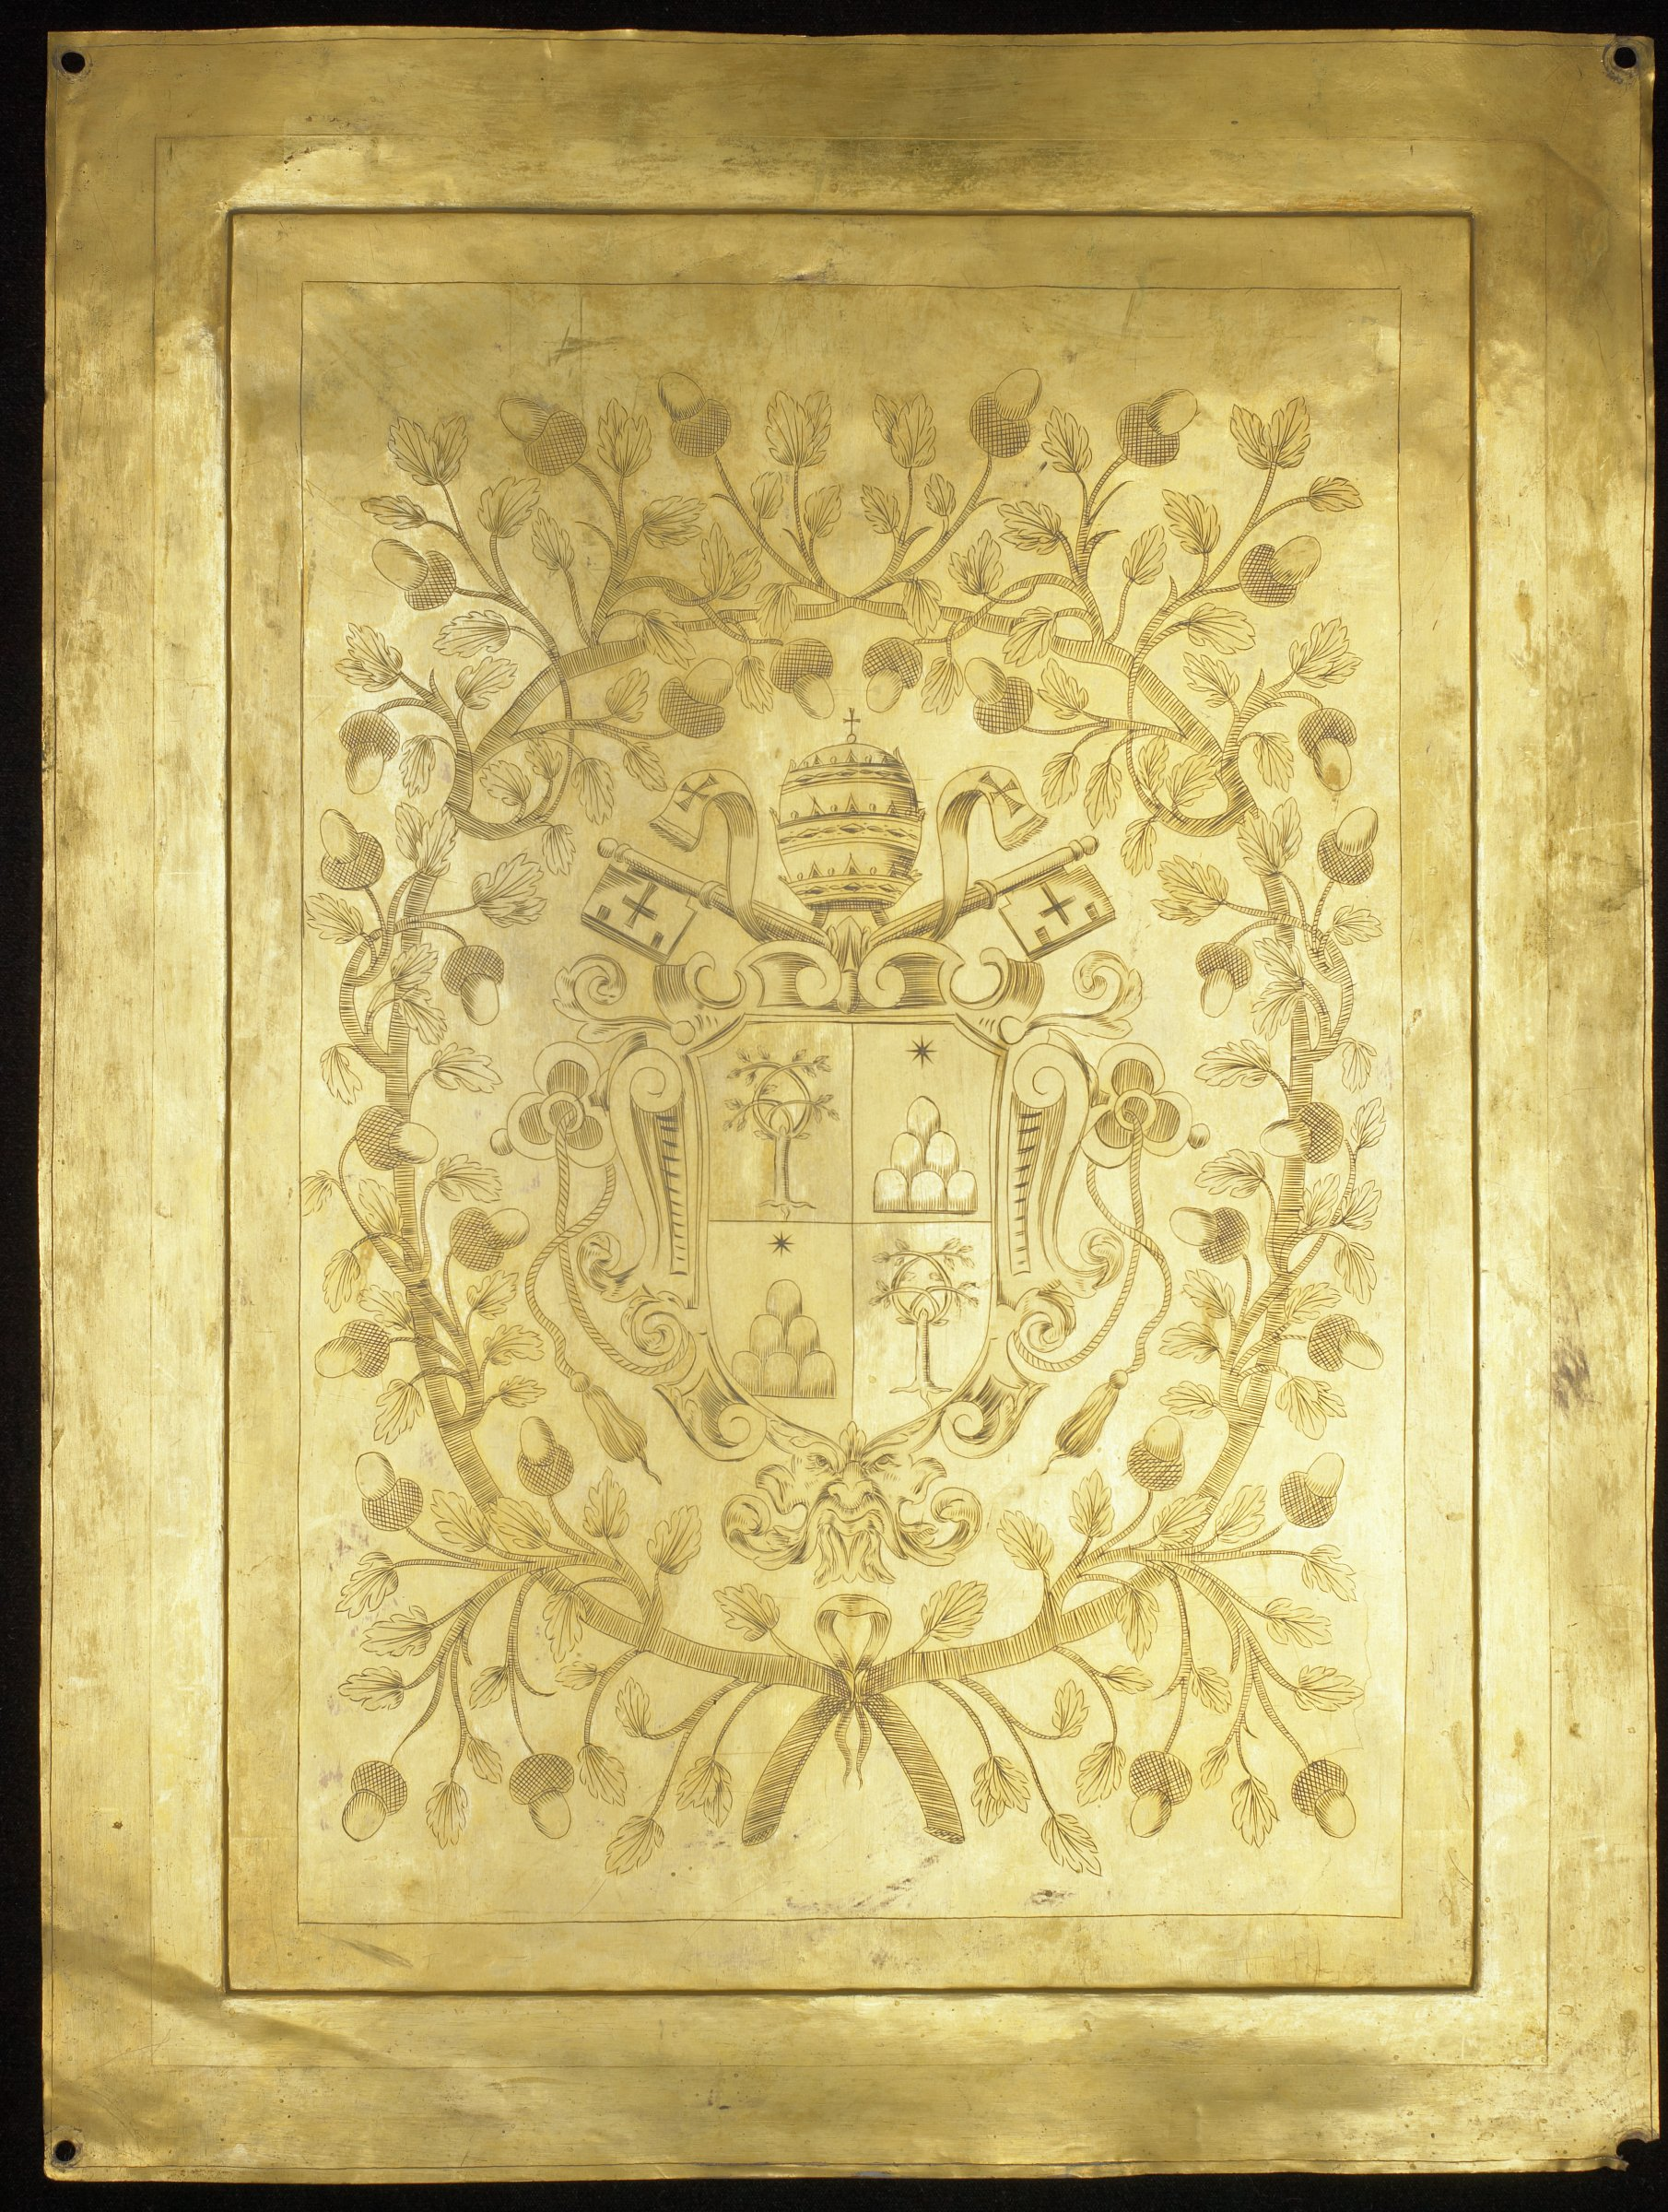 Thin metal plate decorated on a raised central panel with a line engraving of the coat-of-arms of Fabio Chigi, Pope Alexander VII (1599-1667). Chigi family coat-of-arms is made of a shield divided into quarters with six mountains and a star in two panels, and an oak tree in two panels. The shield is surmounted by a papal tiara and two keys, typical of papal arms. The entire coat-of-arms is surrounded by a garland of oak leaves and acorns.